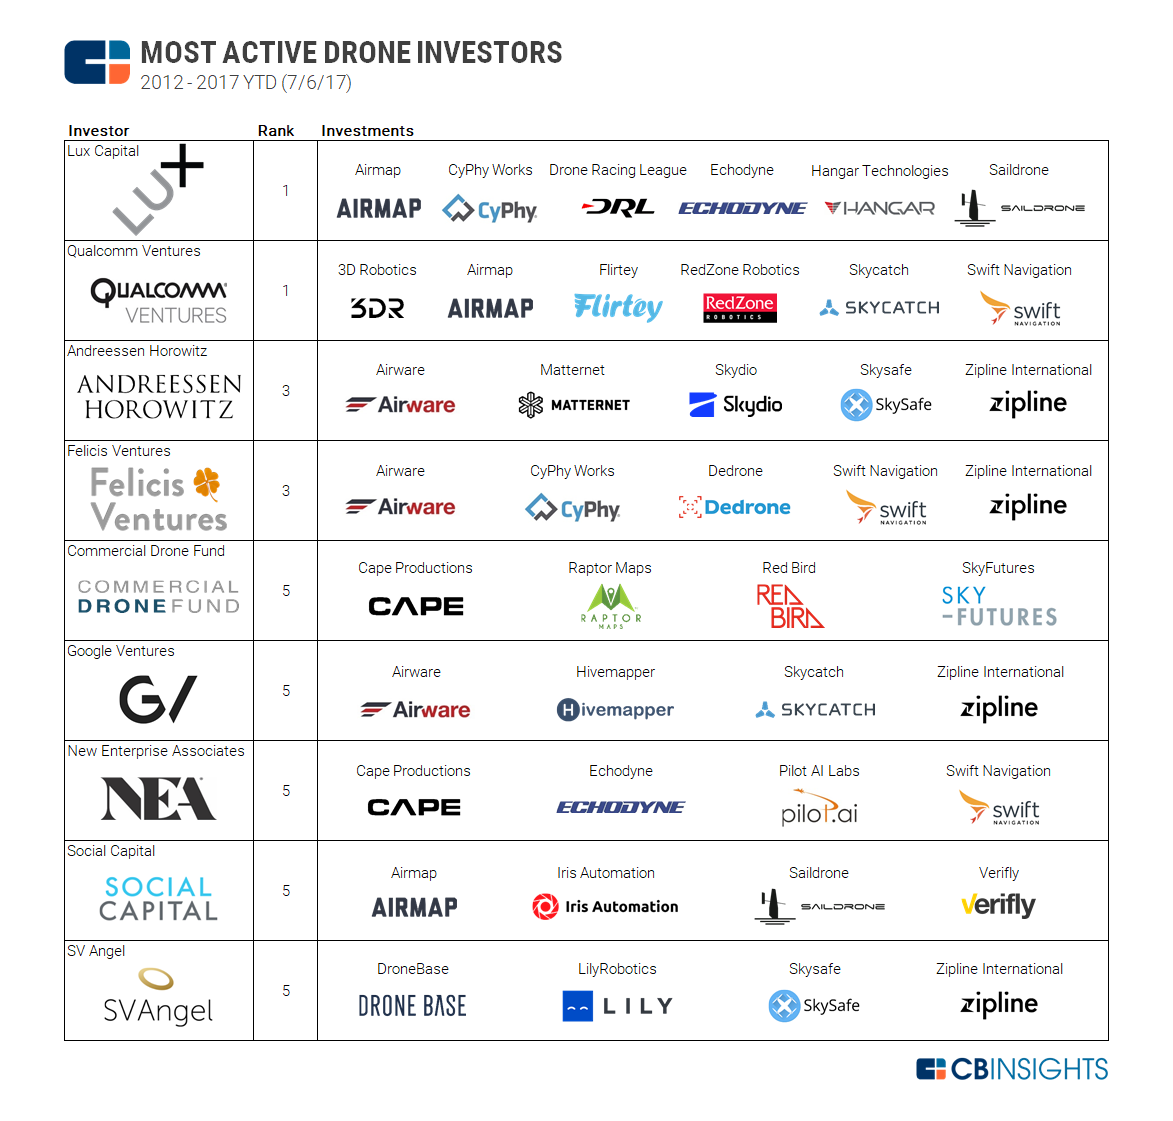 b350a1f0a0e6 The Most Active Drone Investors And Their Companies In One Infographic